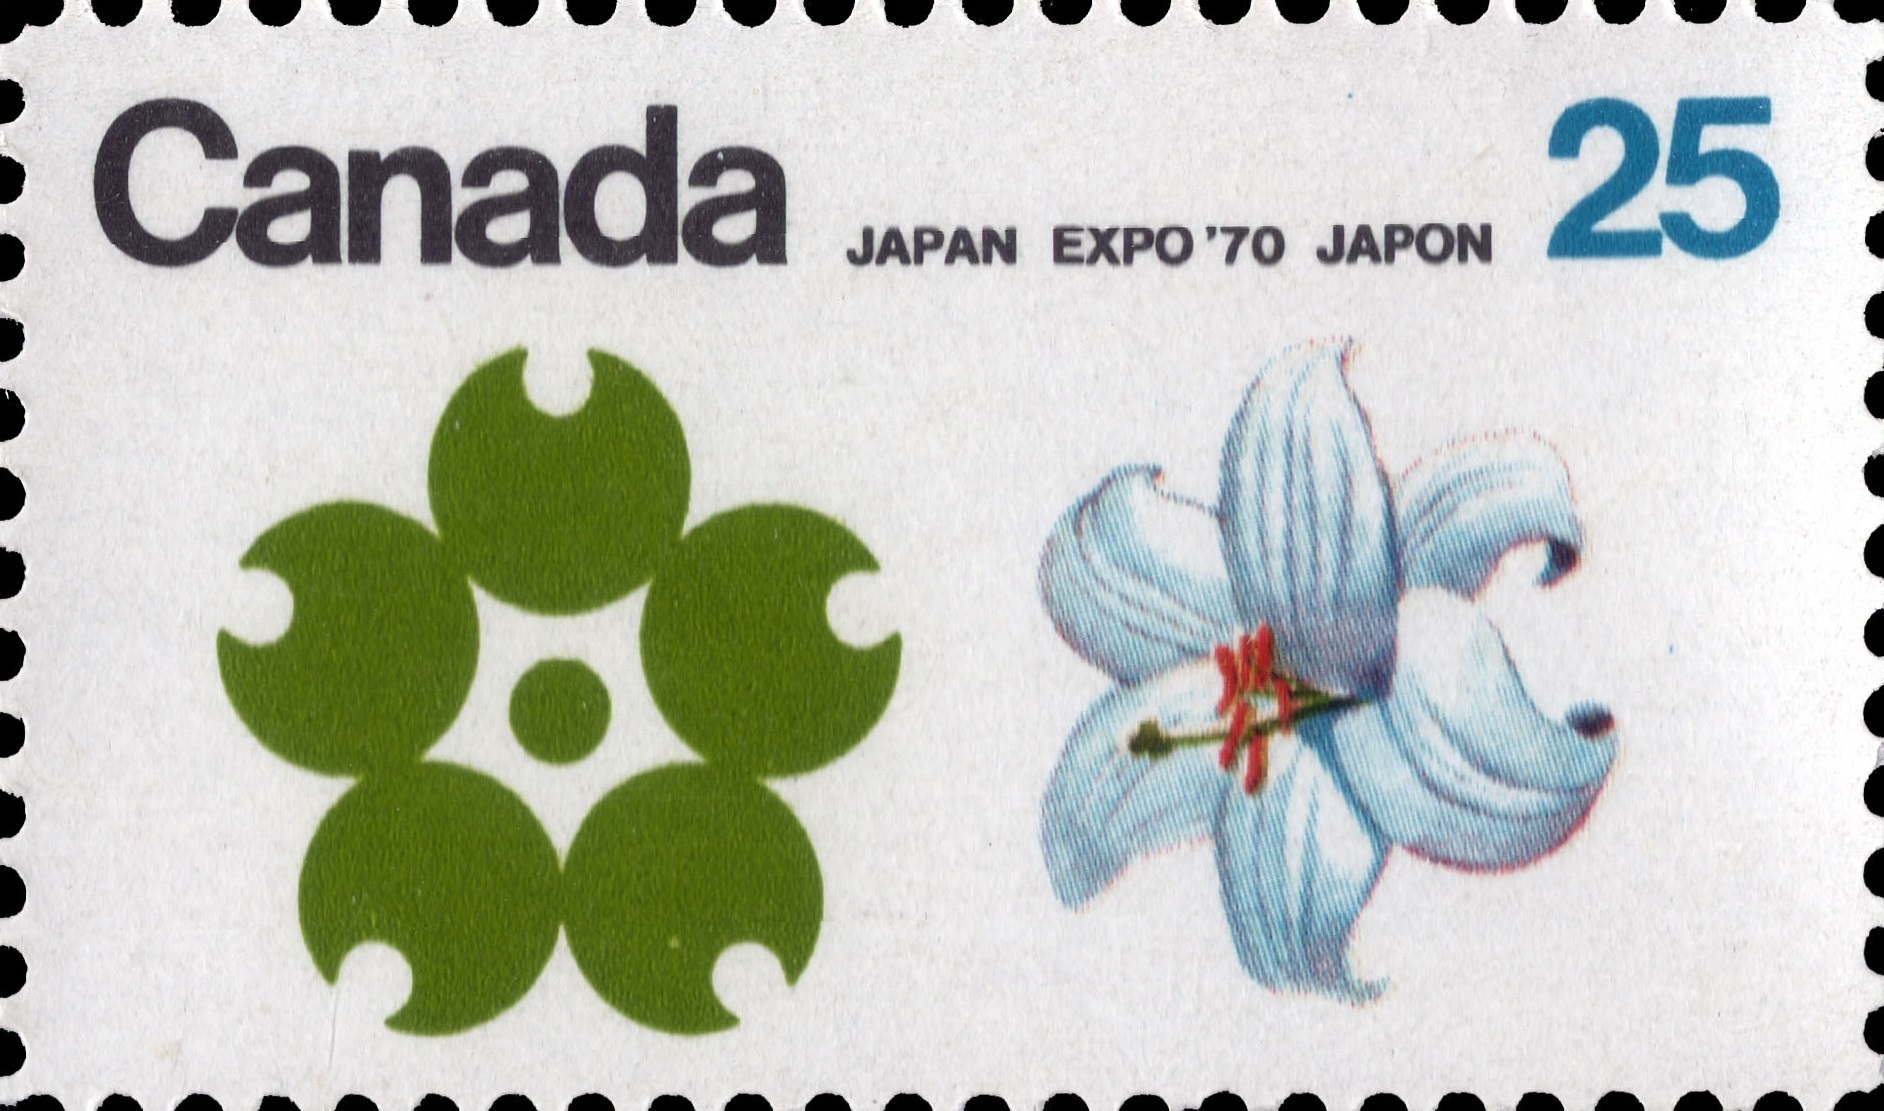 Quebec Canada Postage Stamp | Japan Expo '70